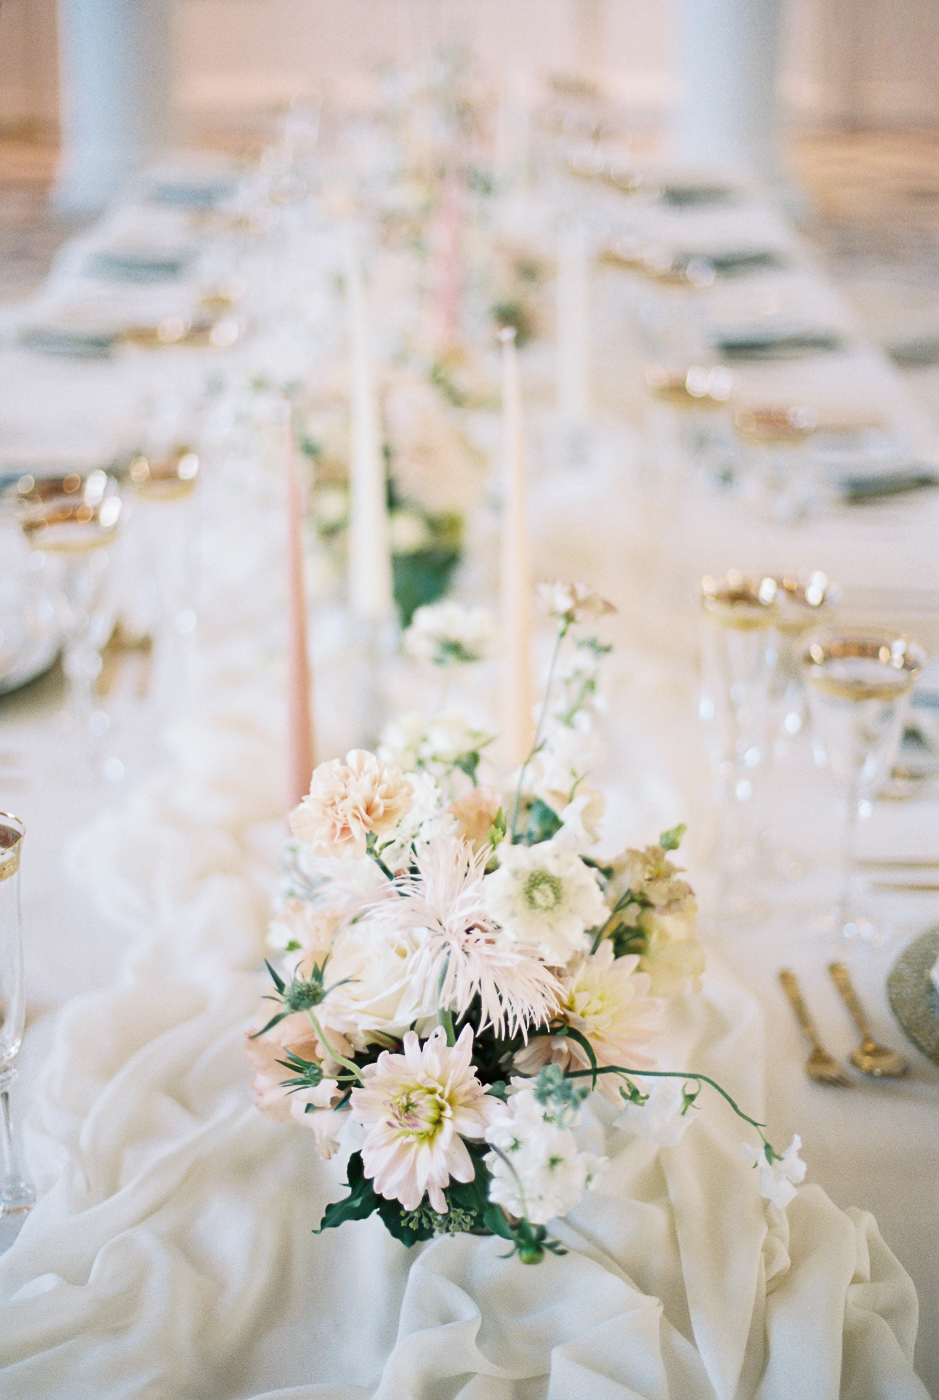 soft and romantic wedding table